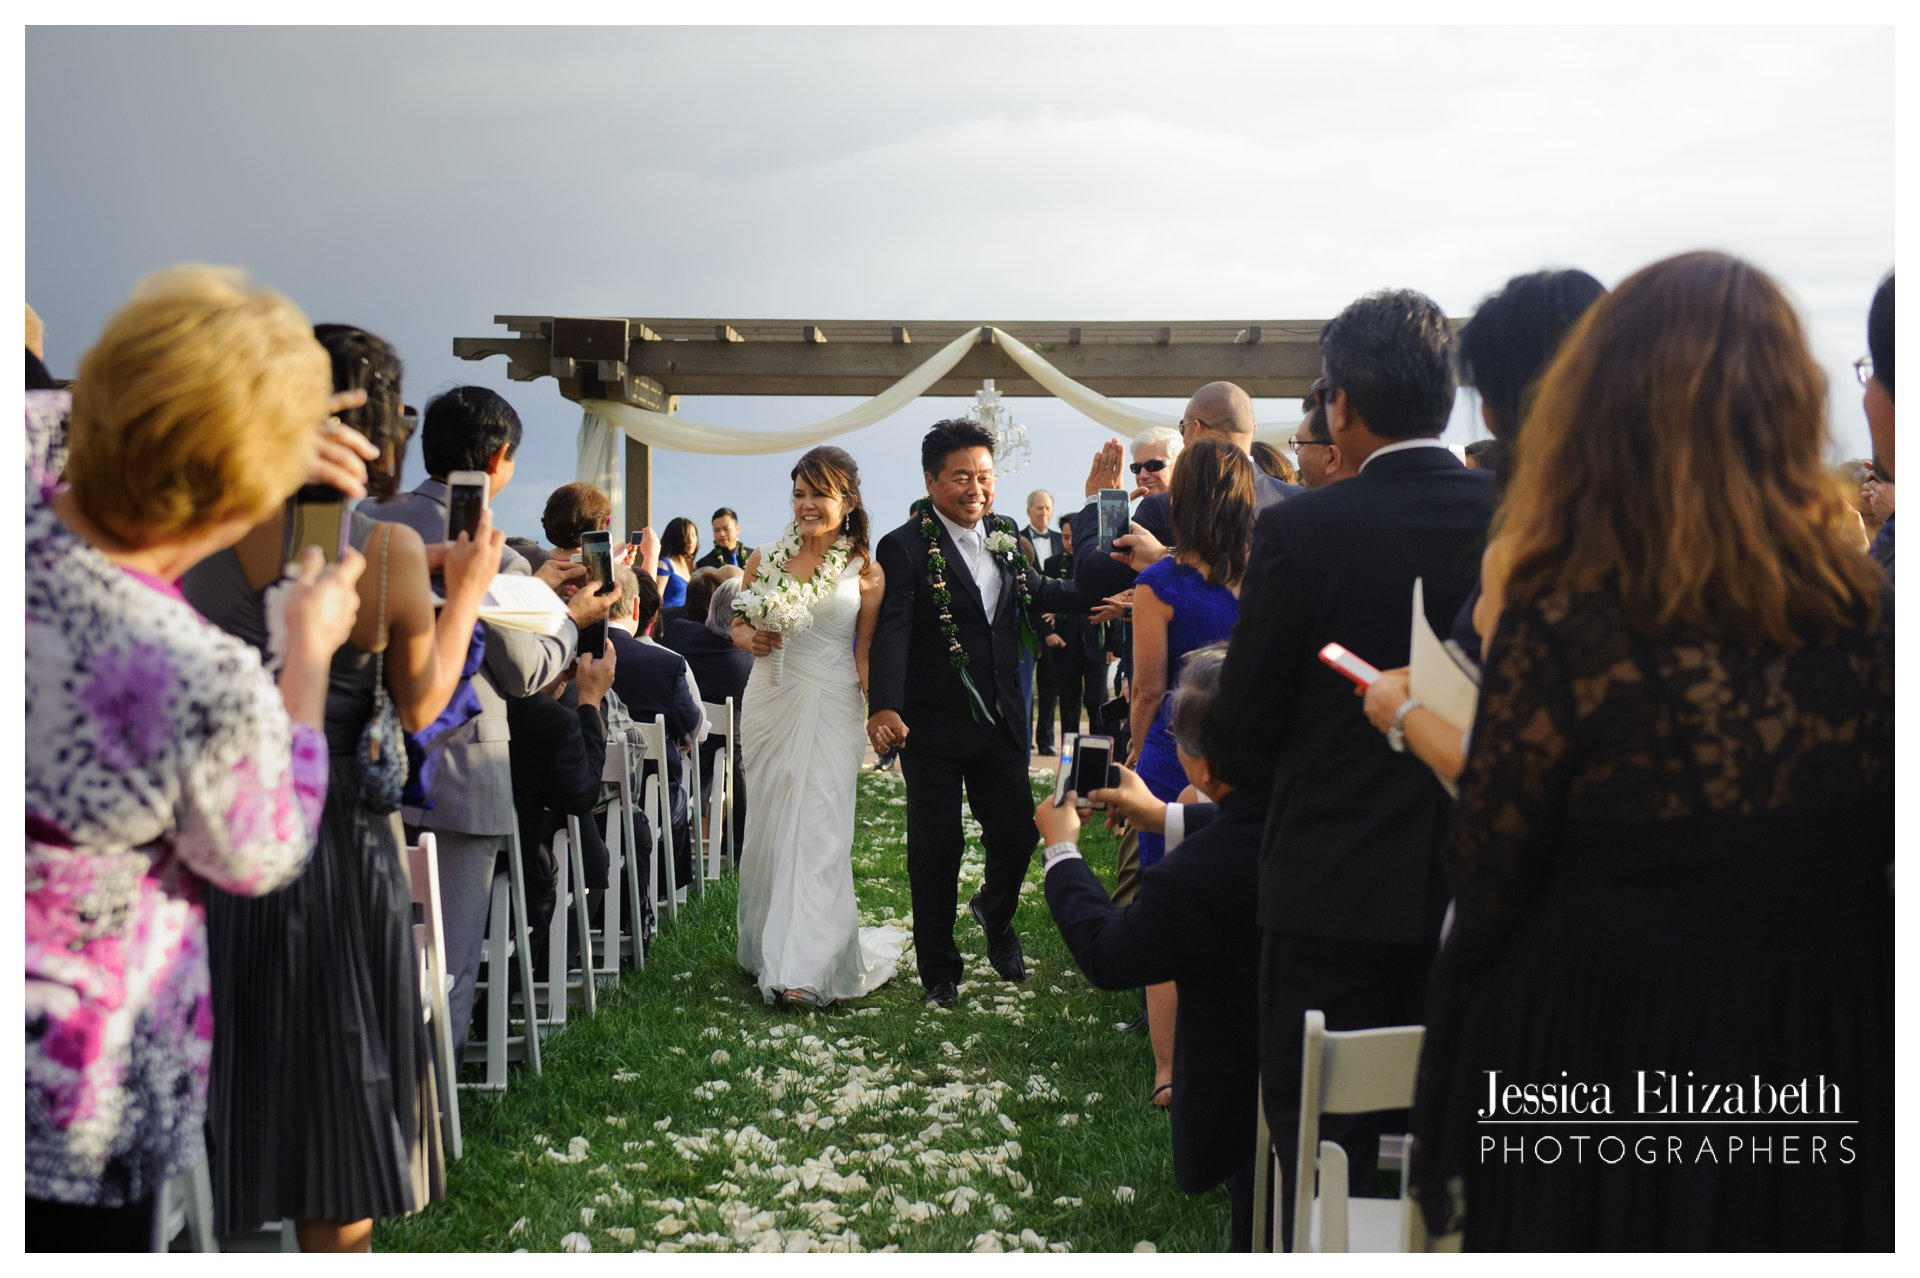 26-Terranea-Palos-Verdes-Wedding-Photography-by-Jessica-Elizabeth-w.jpg